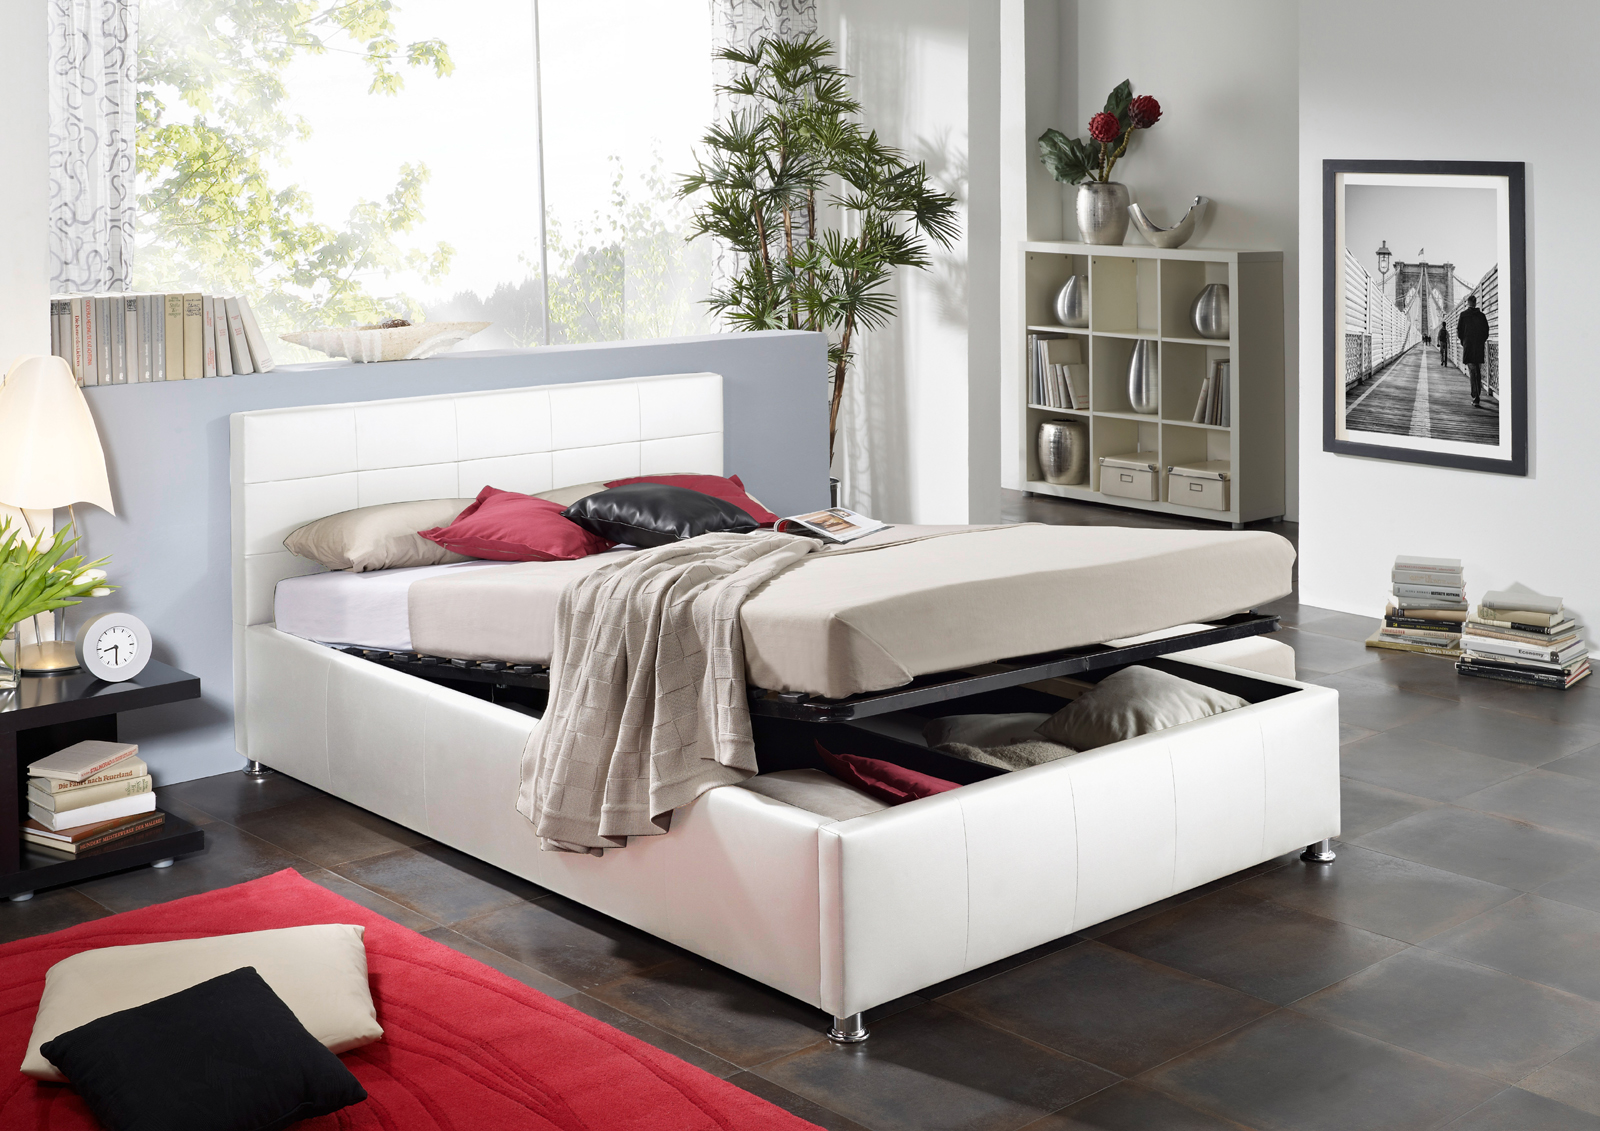 sam design bett 100 x 200 cm wei kira bettkasten. Black Bedroom Furniture Sets. Home Design Ideas